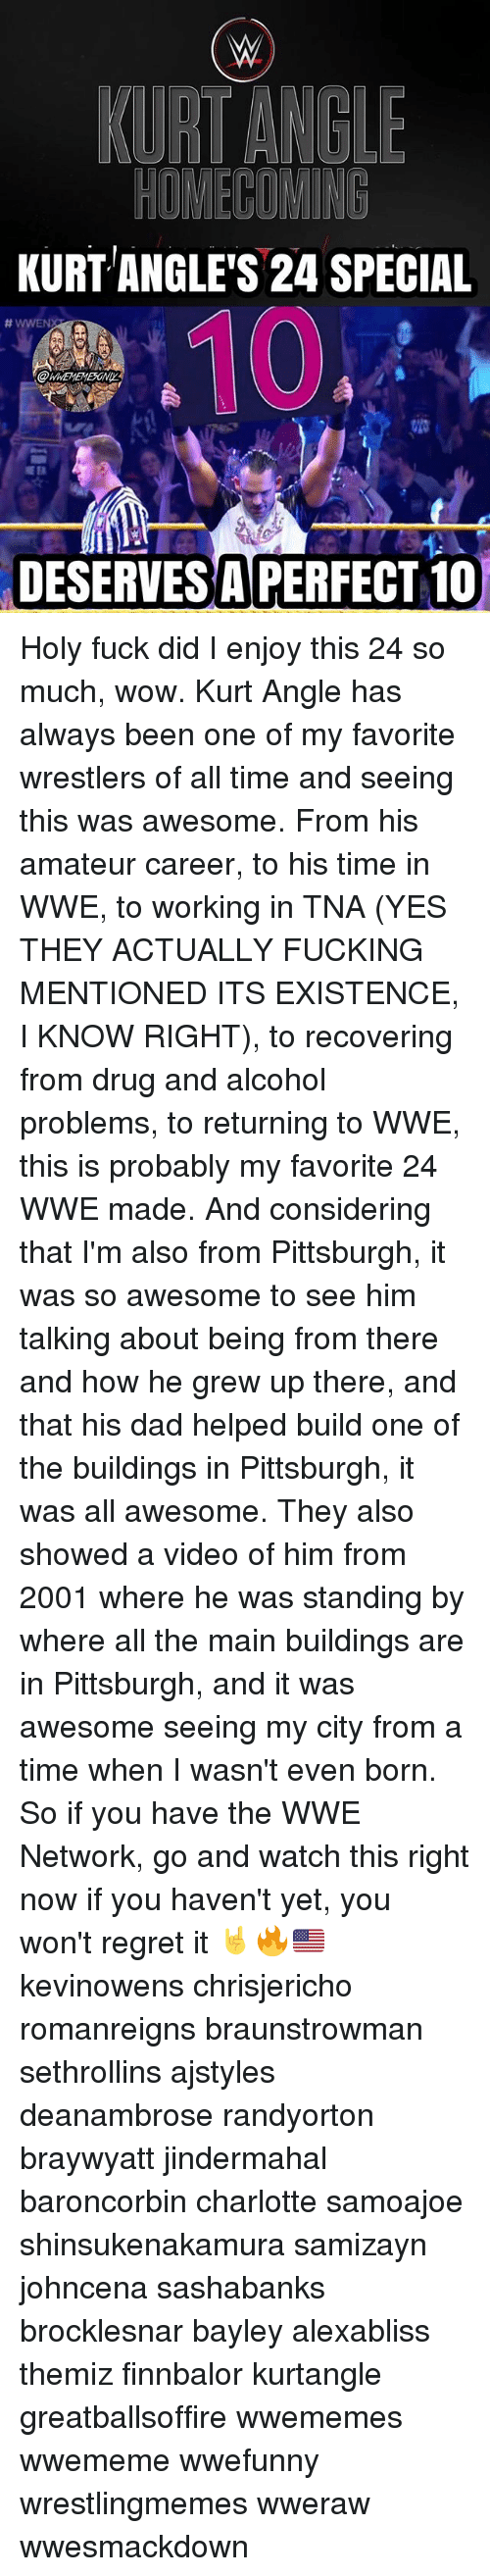 Bayley: KURT ANGLE'S 24 SPECIAL  OWWEMEMESONIY  DESERVES A PERFECT 10 Holy fuck did I enjoy this 24 so much, wow. Kurt Angle has always been one of my favorite wrestlers of all time and seeing this was awesome. From his amateur career, to his time in WWE, to working in TNA (YES THEY ACTUALLY FUCKING MENTIONED ITS EXISTENCE, I KNOW RIGHT), to recovering from drug and alcohol problems, to returning to WWE, this is probably my favorite 24 WWE made. And considering that I'm also from Pittsburgh, it was so awesome to see him talking about being from there and how he grew up there, and that his dad helped build one of the buildings in Pittsburgh, it was all awesome. They also showed a video of him from 2001 where he was standing by where all the main buildings are in Pittsburgh, and it was awesome seeing my city from a time when I wasn't even born. So if you have the WWE Network, go and watch this right now if you haven't yet, you won't regret it 🤘🔥🇺🇸 kevinowens chrisjericho romanreigns braunstrowman sethrollins ajstyles deanambrose randyorton braywyatt jindermahal baroncorbin charlotte samoajoe shinsukenakamura samizayn johncena sashabanks brocklesnar bayley alexabliss themiz finnbalor kurtangle greatballsoffire wwememes wwememe wwefunny wrestlingmemes wweraw wwesmackdown